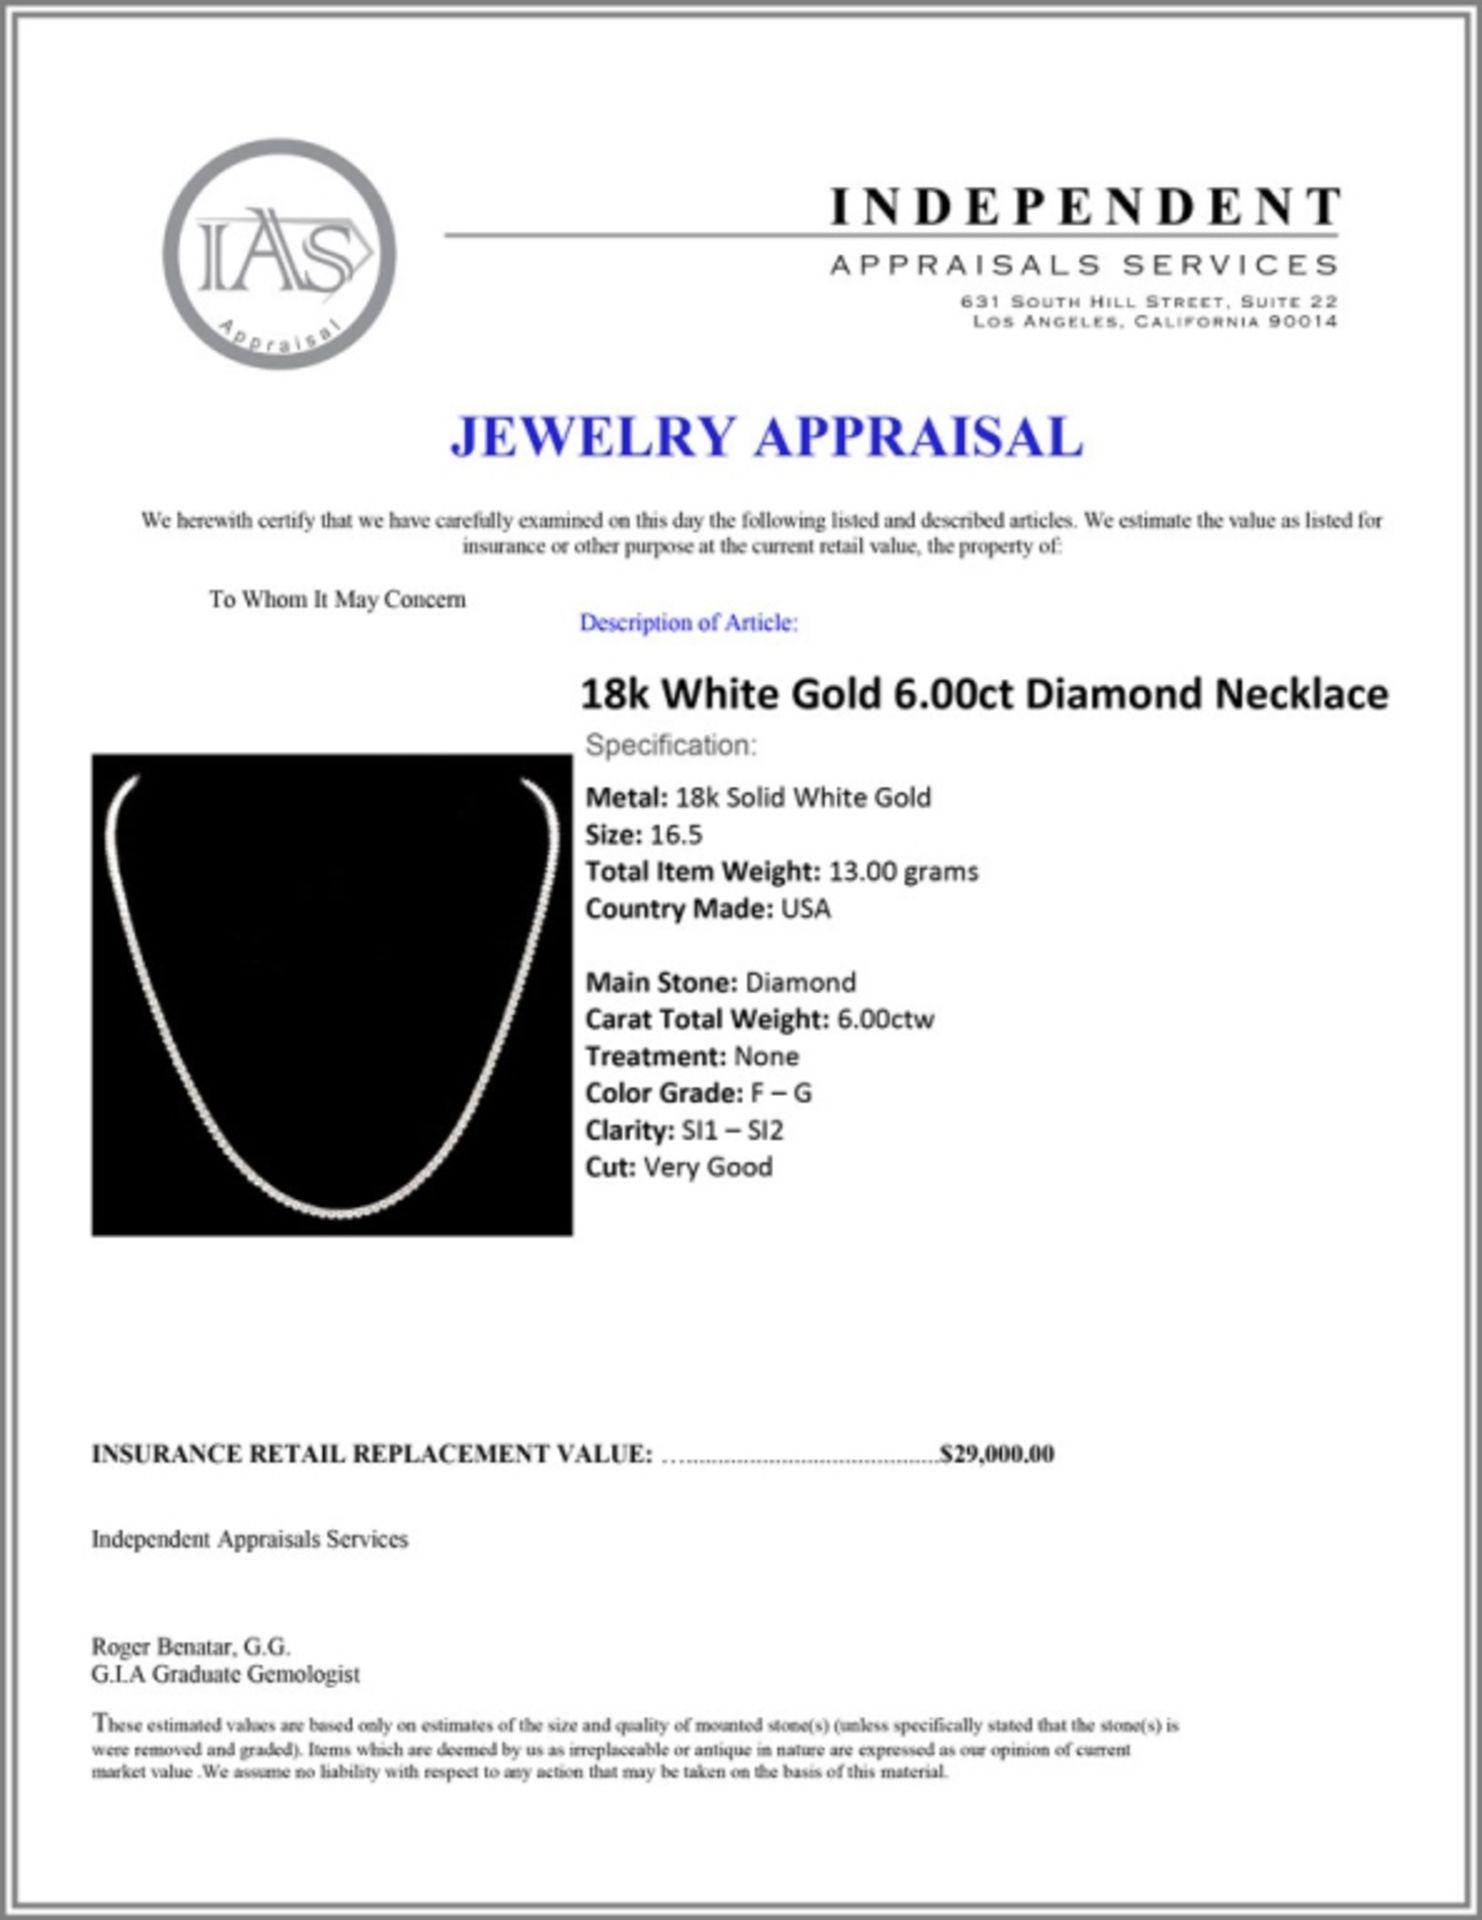 18k White Gold 6.00ct Diamond Necklace - Image 3 of 3